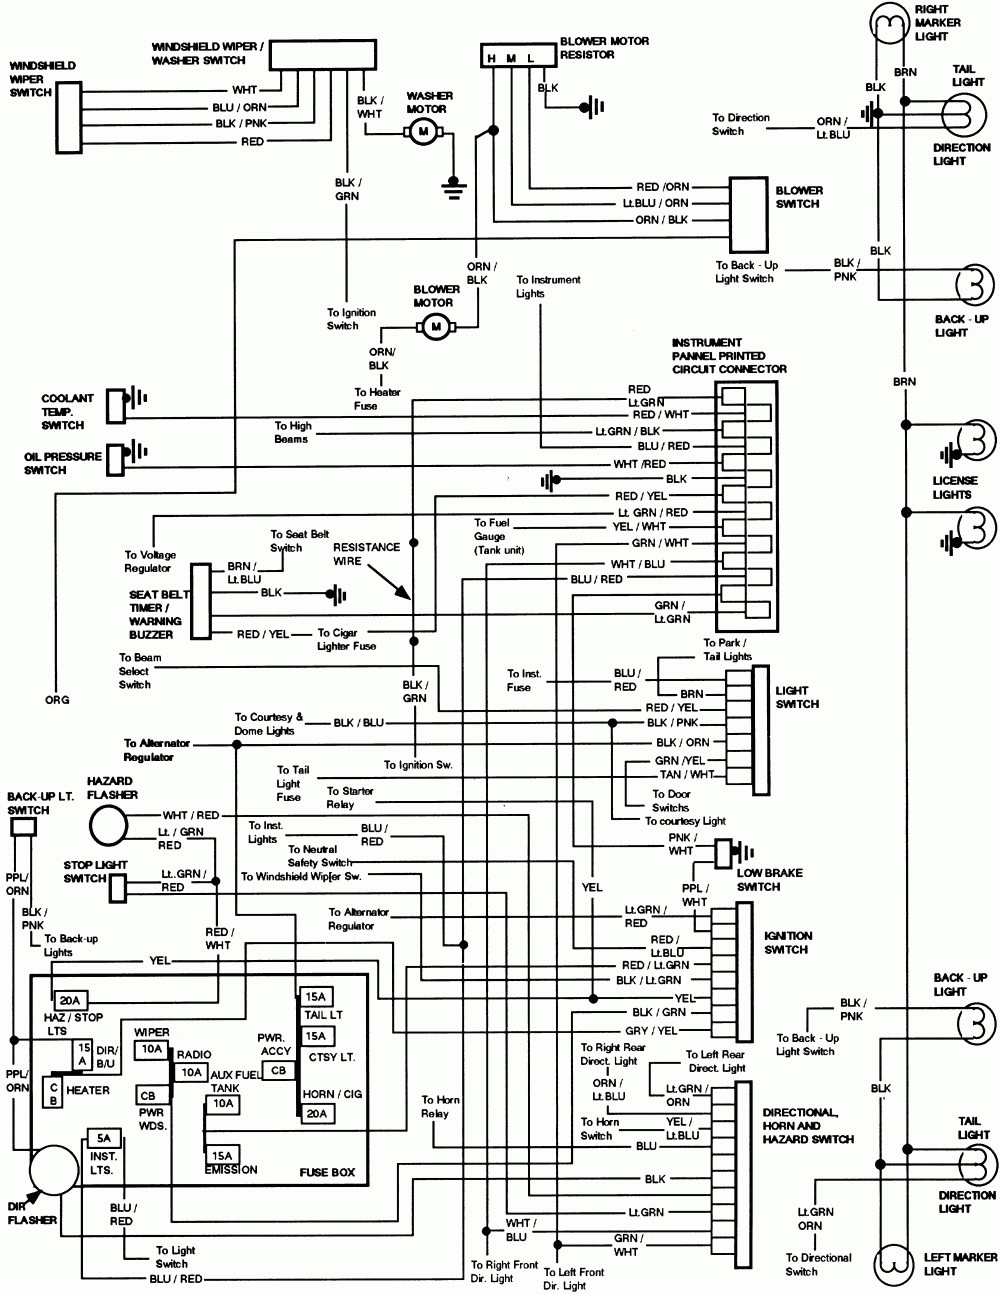 2008 F150 Ignition System Wiring Diagrams - Wiring Data